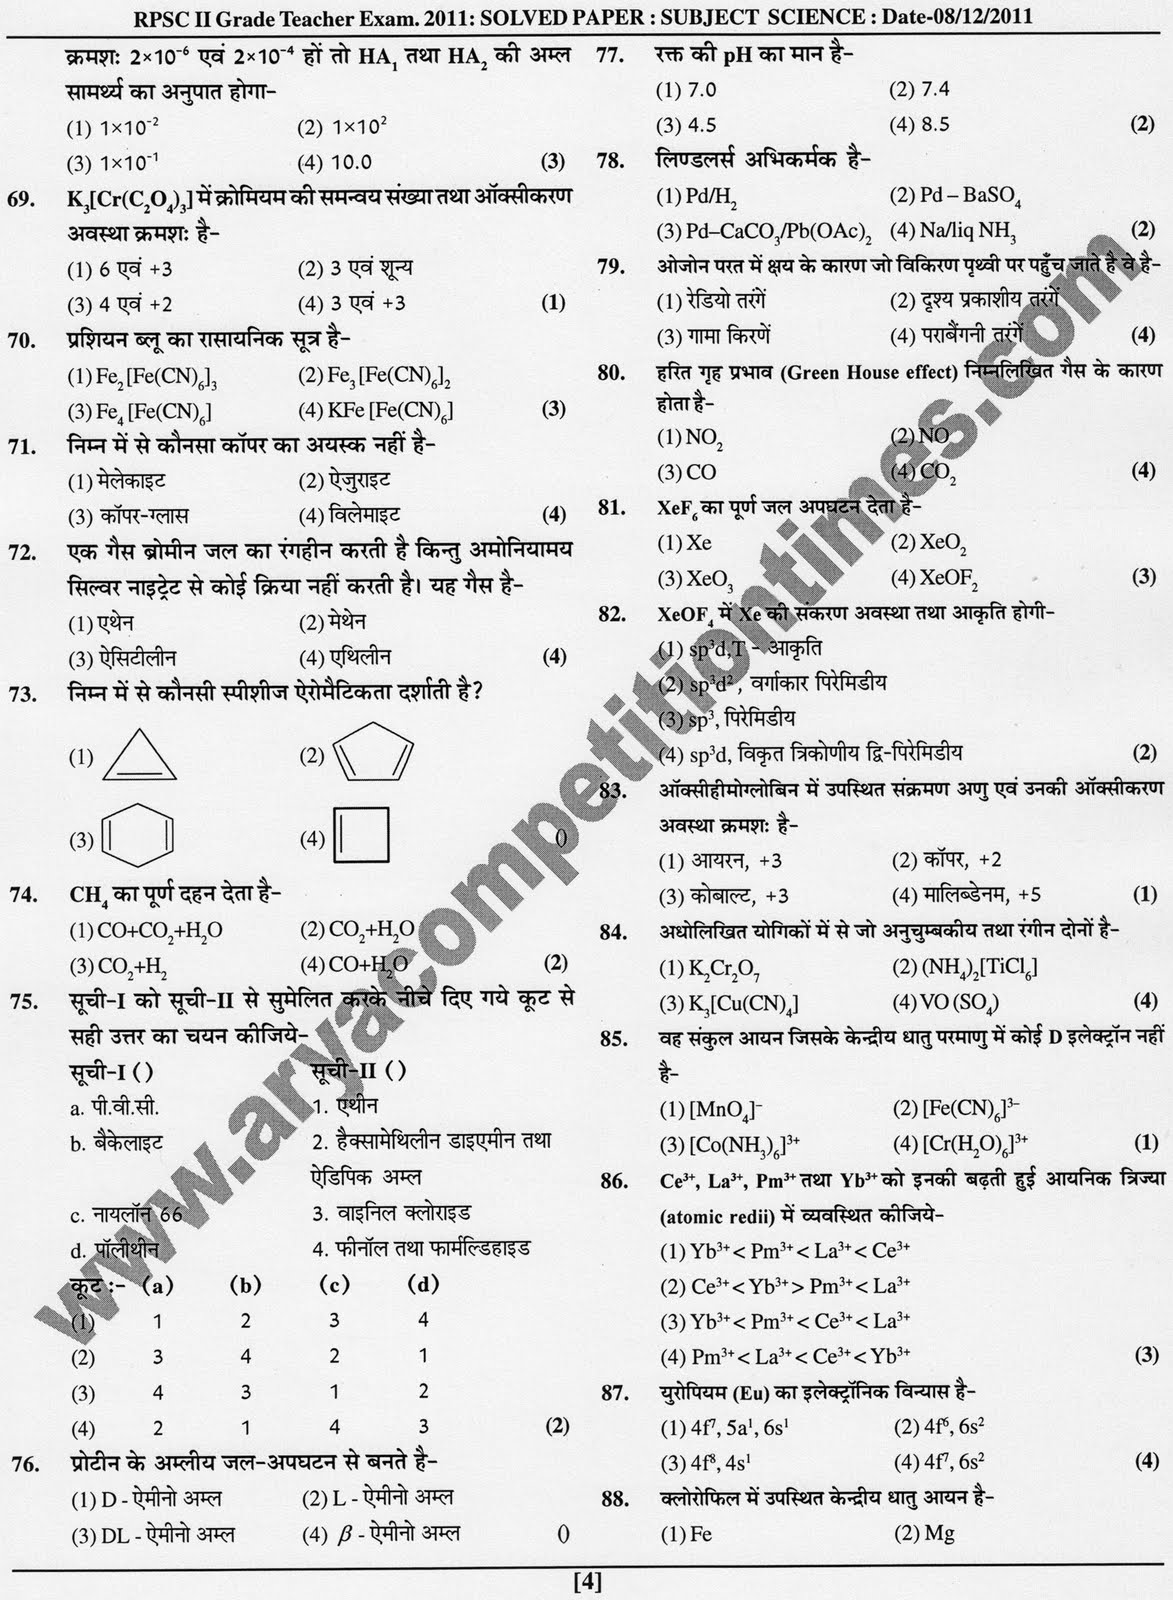 RPSC Answer Key Science 2011 (2nd Grade Teacher Solved